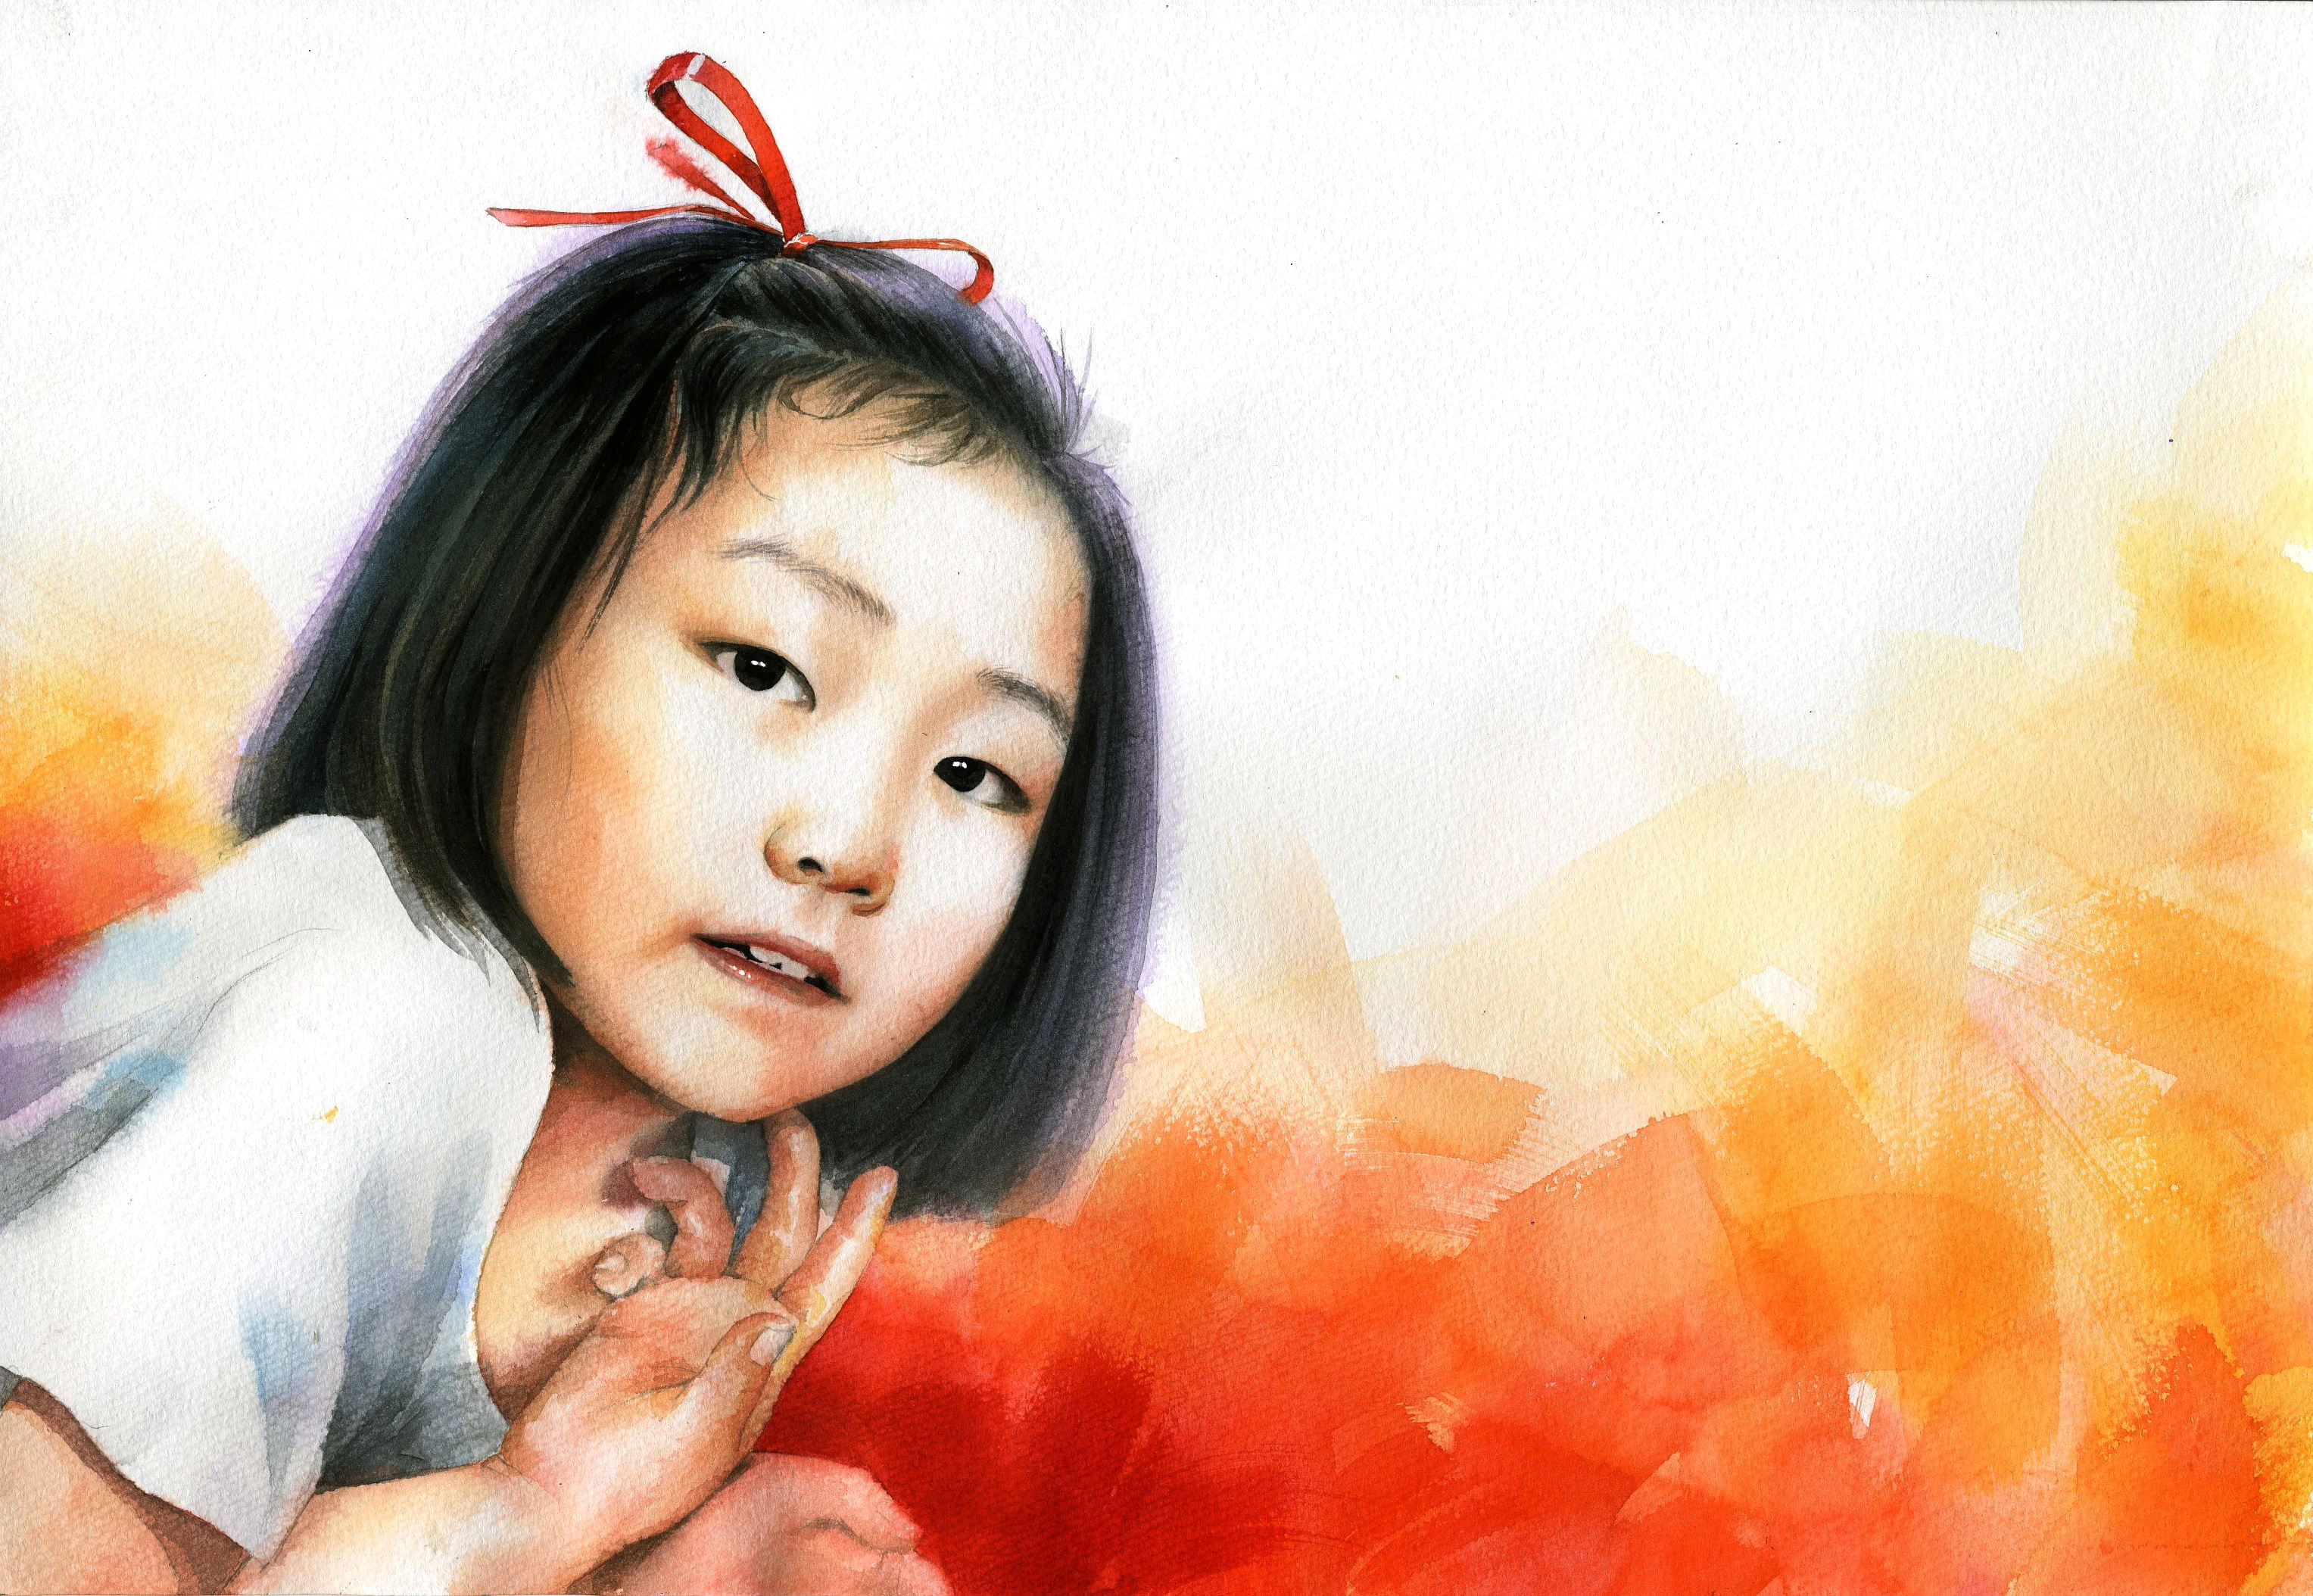 Watercolor Portrait Of A Cute Asian Girl Free Image